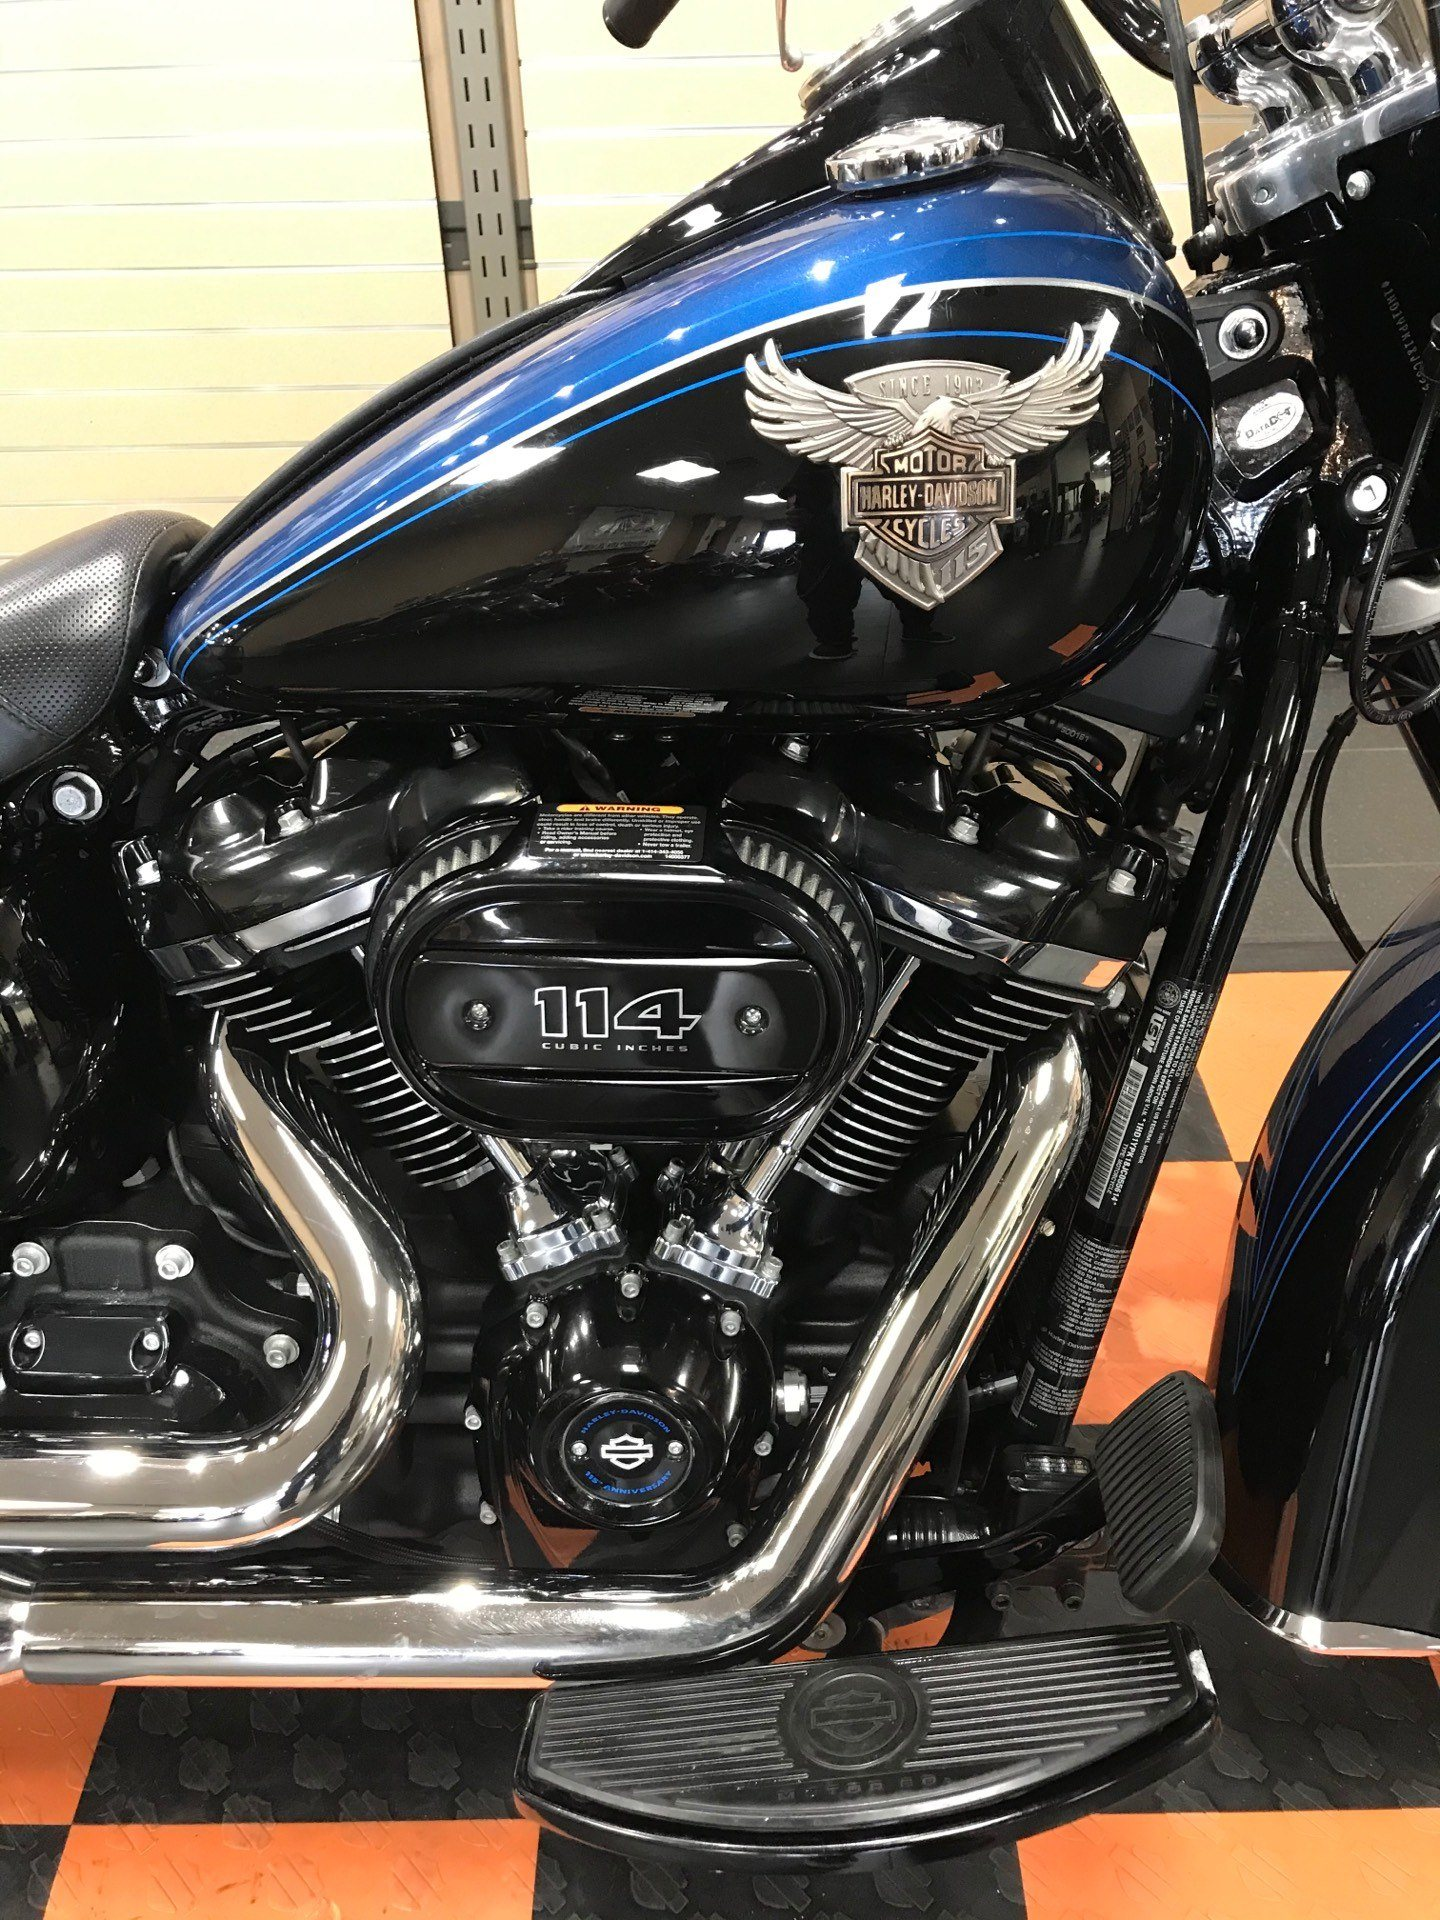 2018 Harley-Davidson Heritage Classic 114 in The Woodlands, Texas - Photo 8